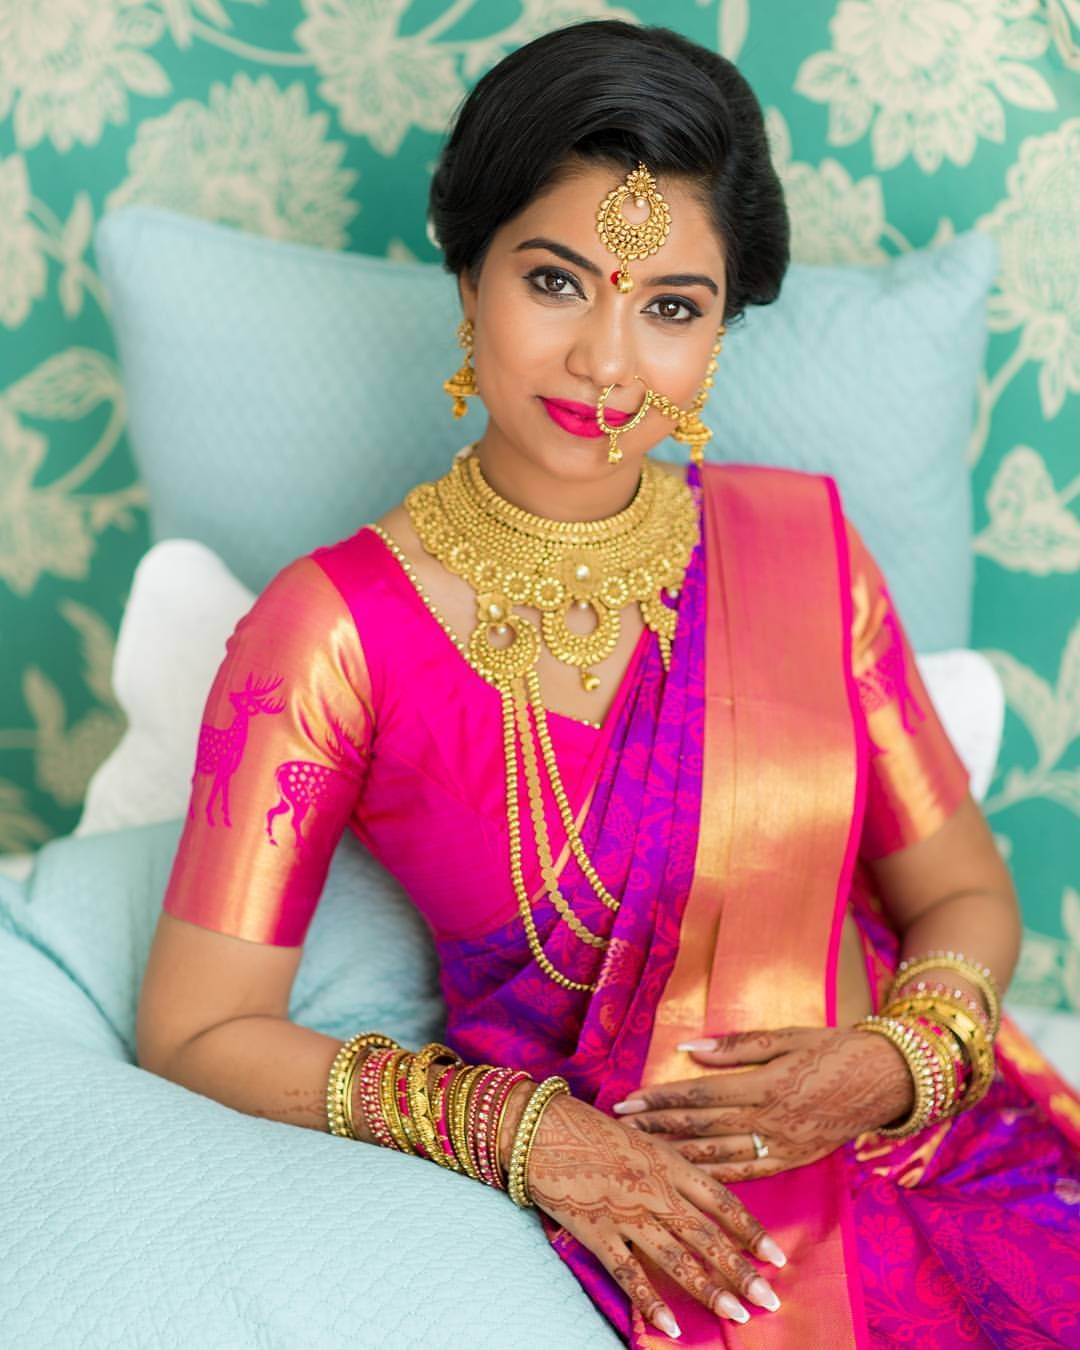 indian wedding photography design%0A South Indian bride  Gold Indian bridal jewelry Temple jewelry  Jhumkis   Purple and